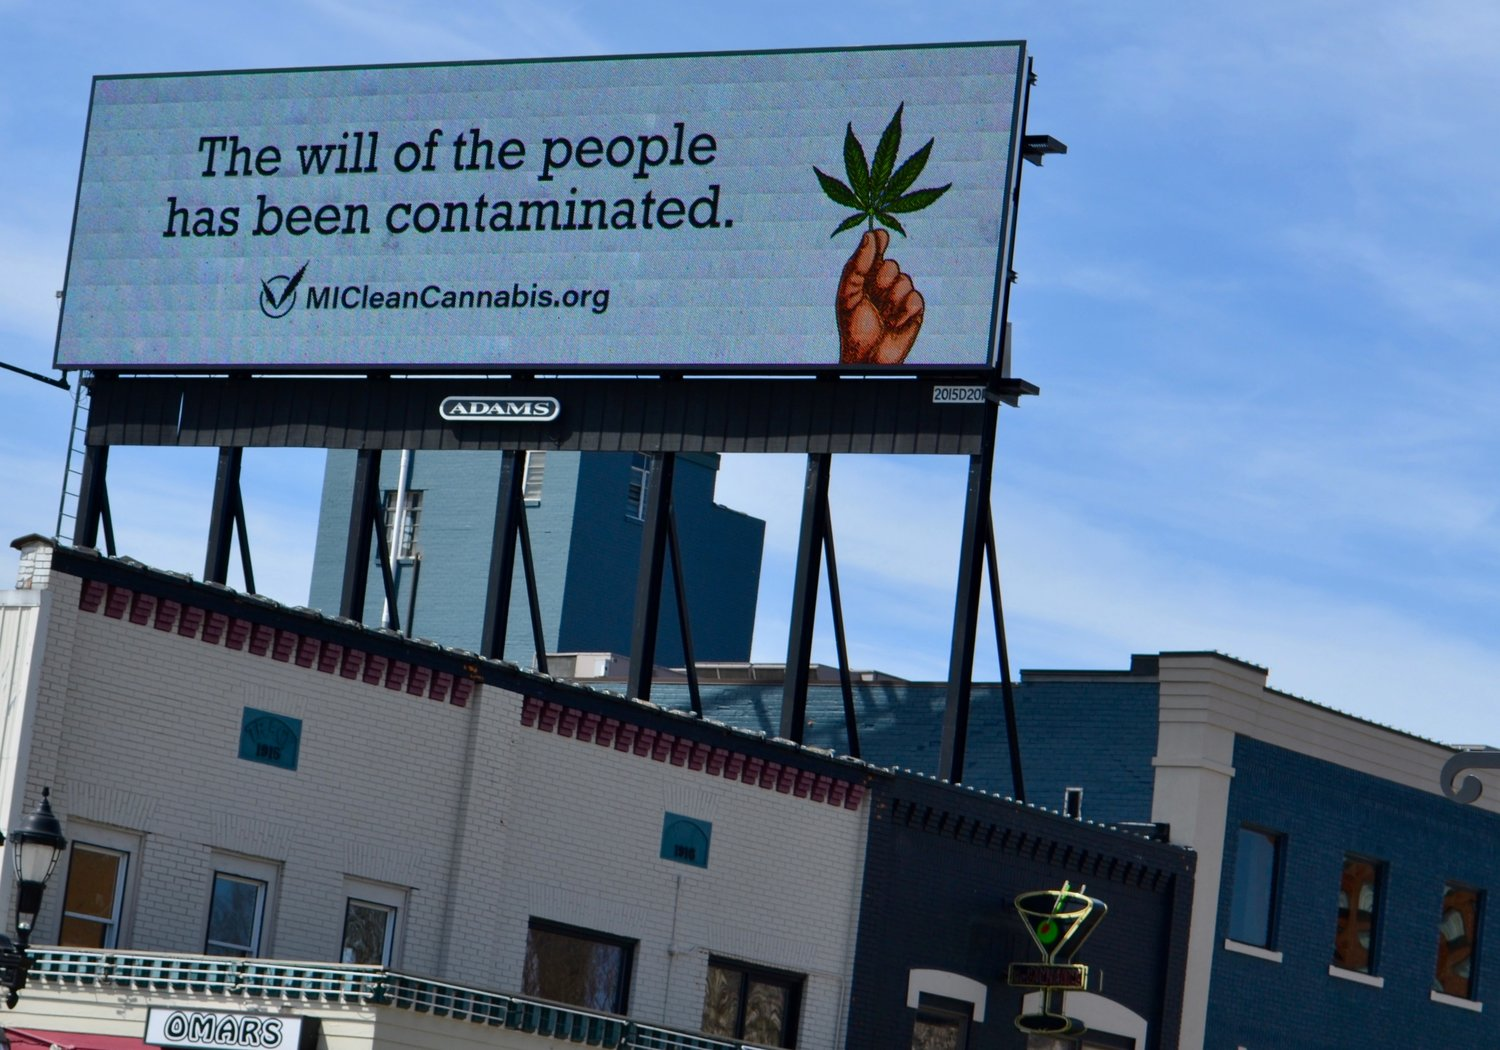 One of Green Peak Innovation's many billboards across Greater Lansing.